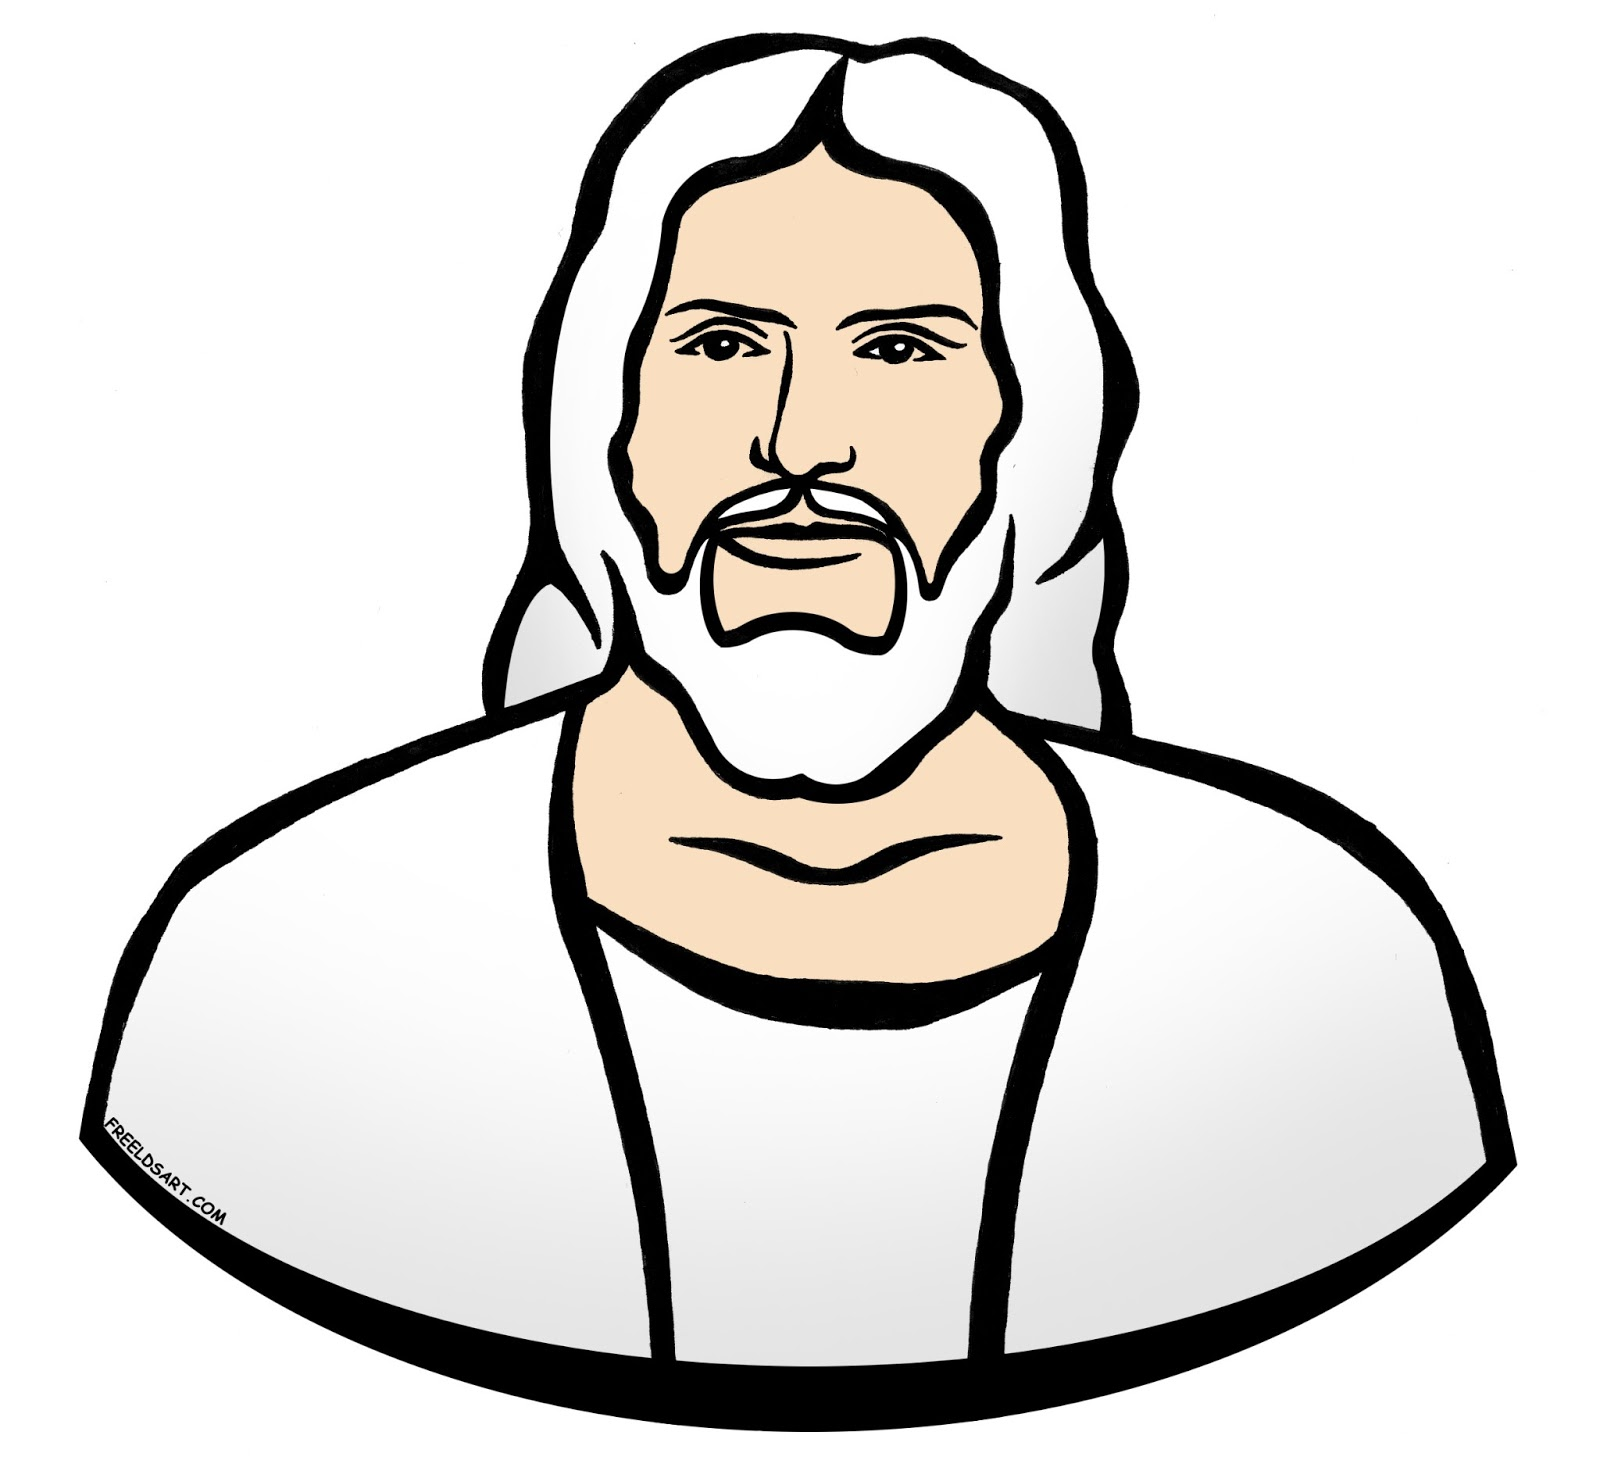 baptism clipart at getdrawings com free for personal use baptism rh getdrawings com lds clipart baptism of jesus lds clipart baptism girl